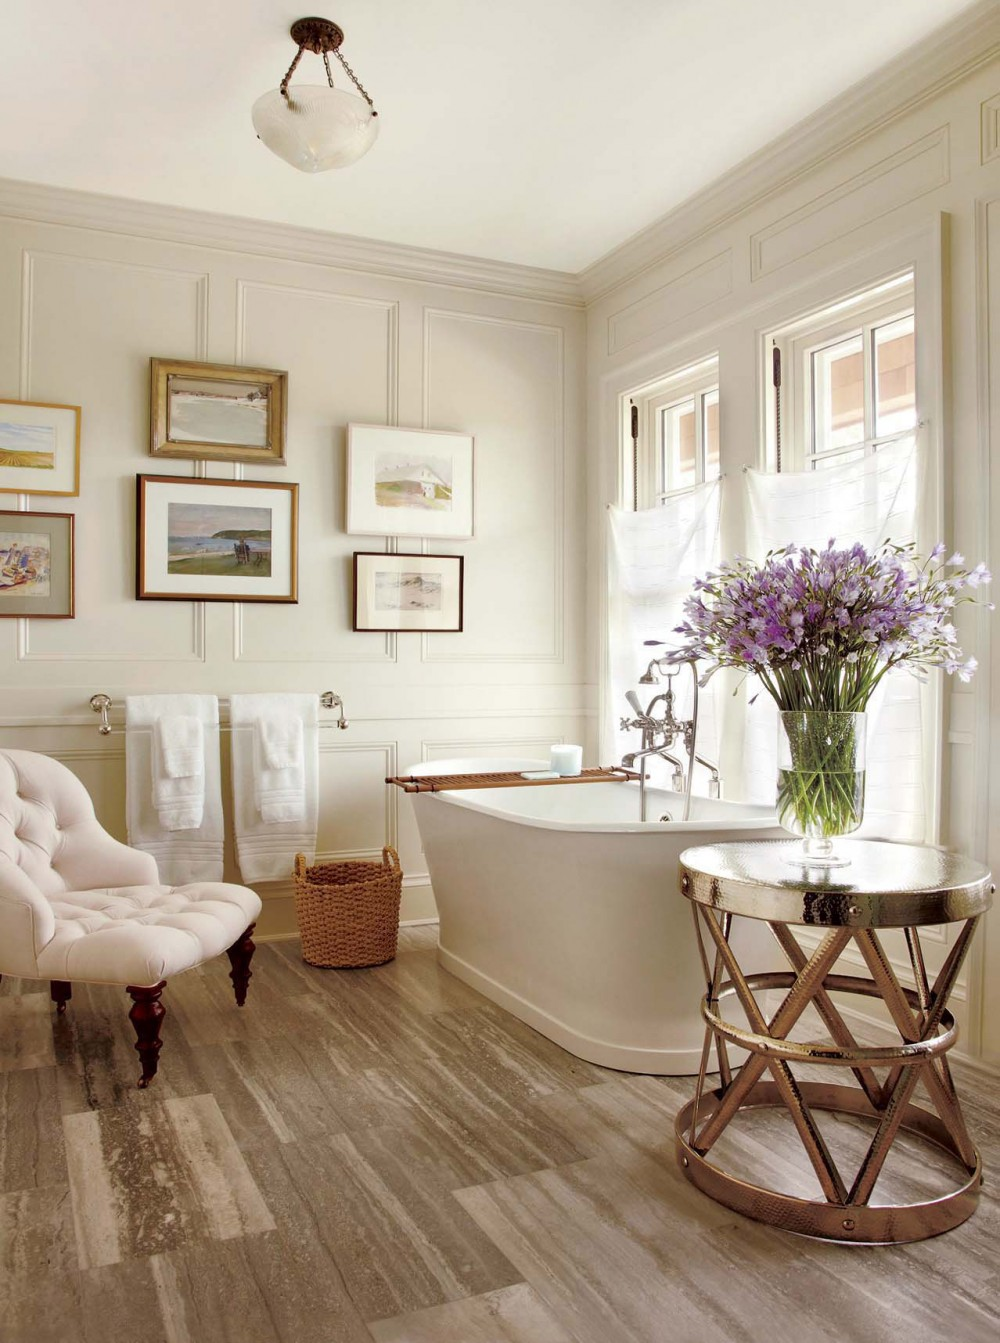 spa bathroom wood floor tiles chaise lounge wall pnelling ideas better decorating bible blog straw basket